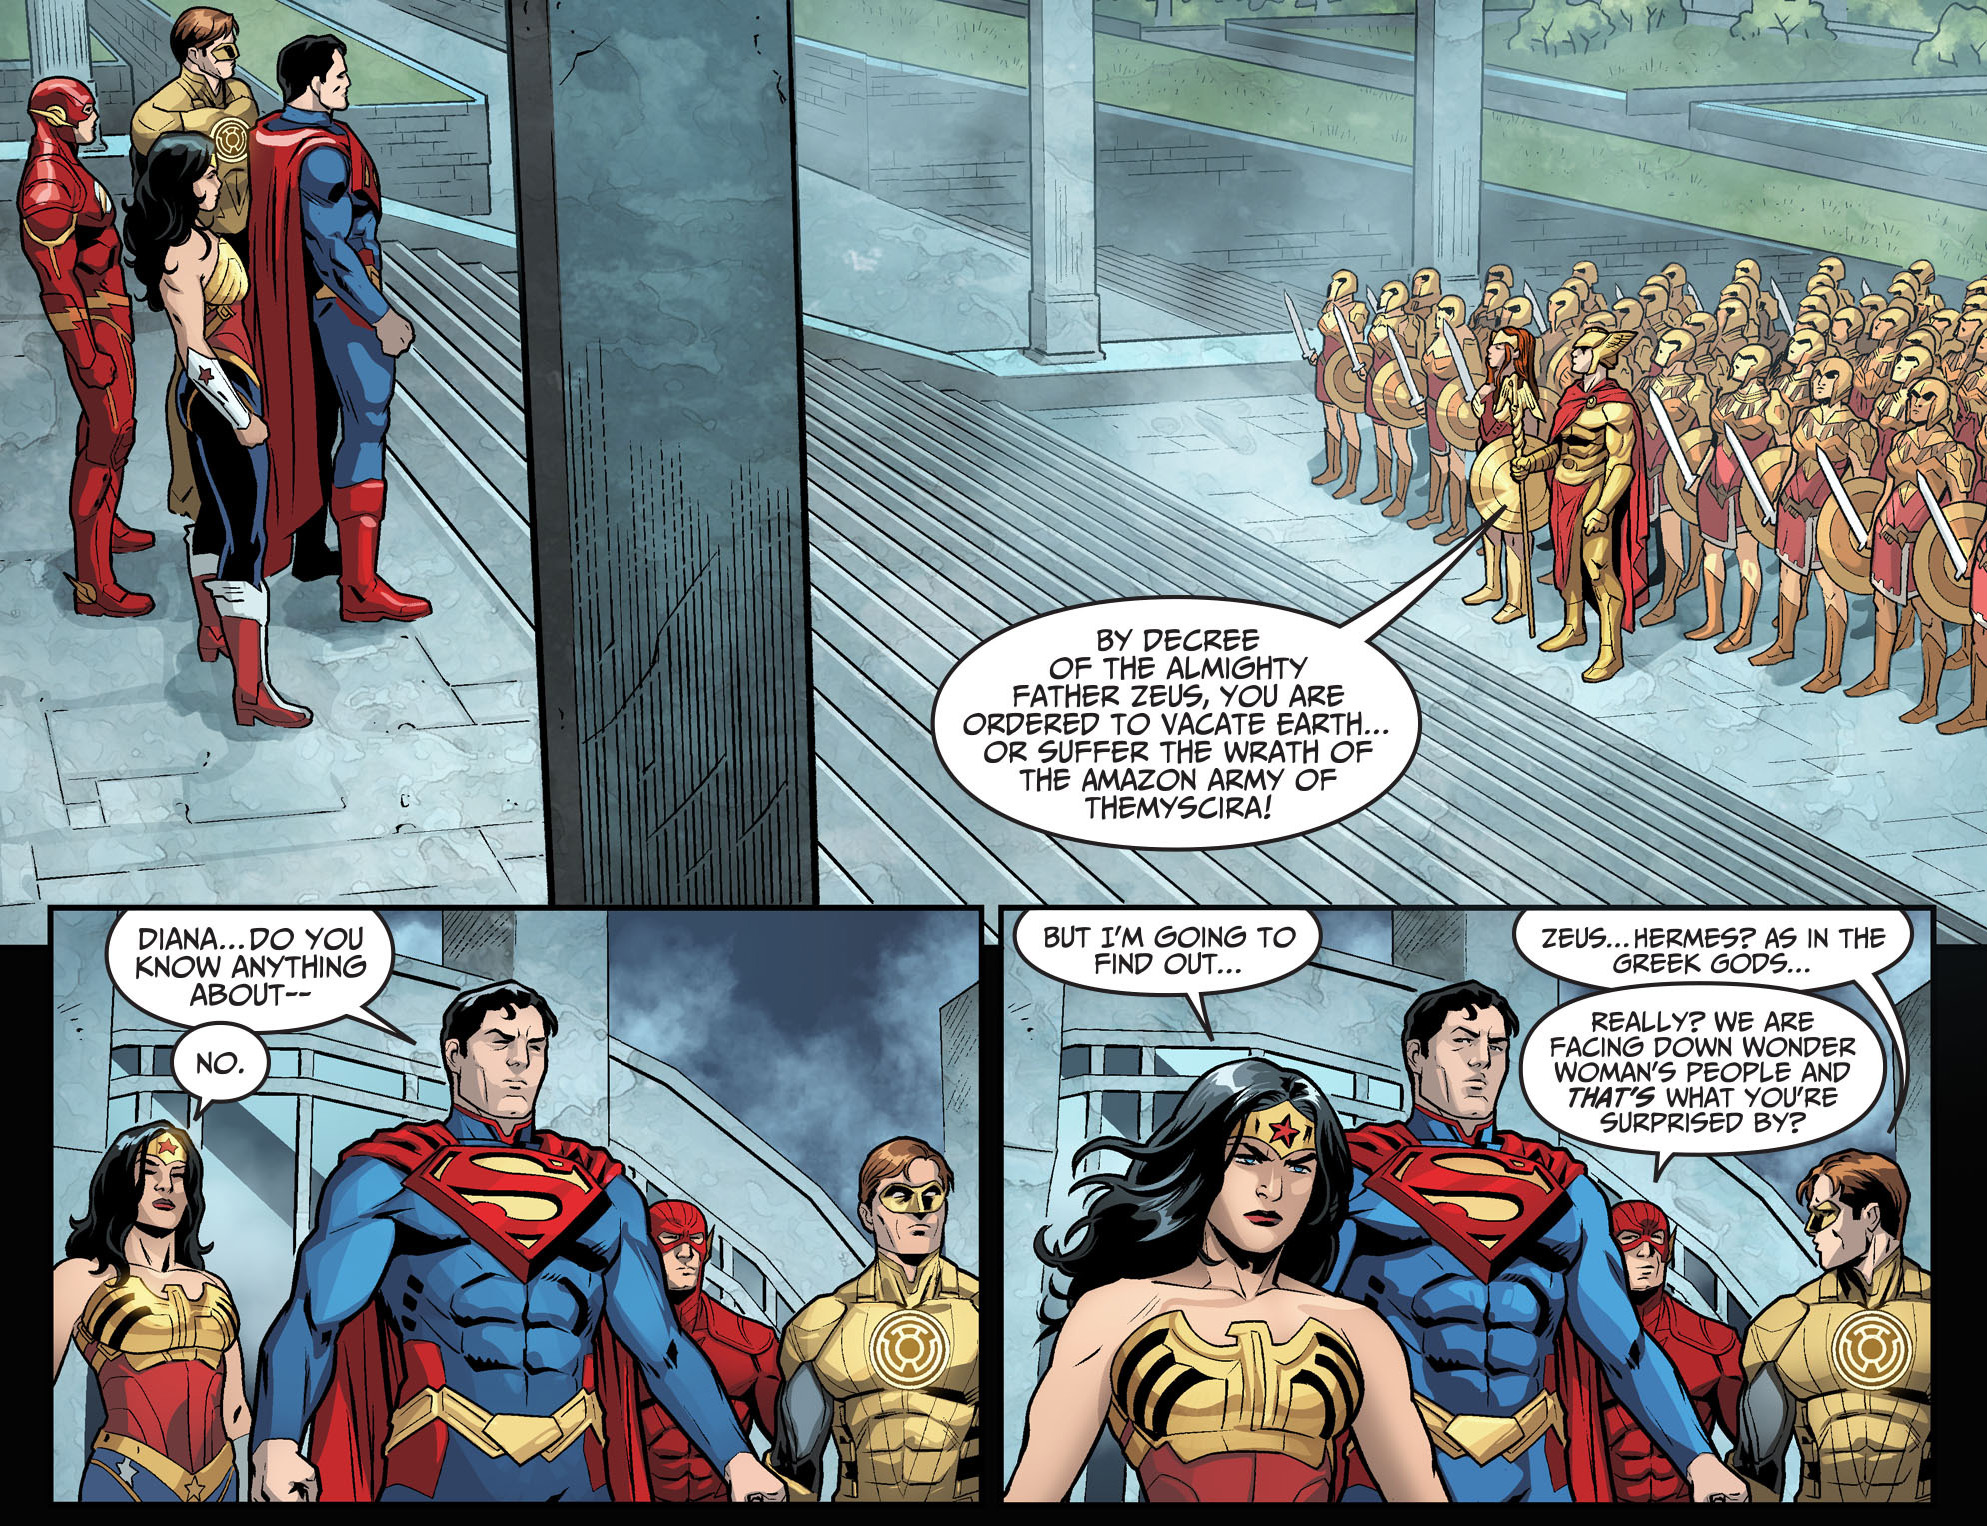 amazon army standoff with superman's team